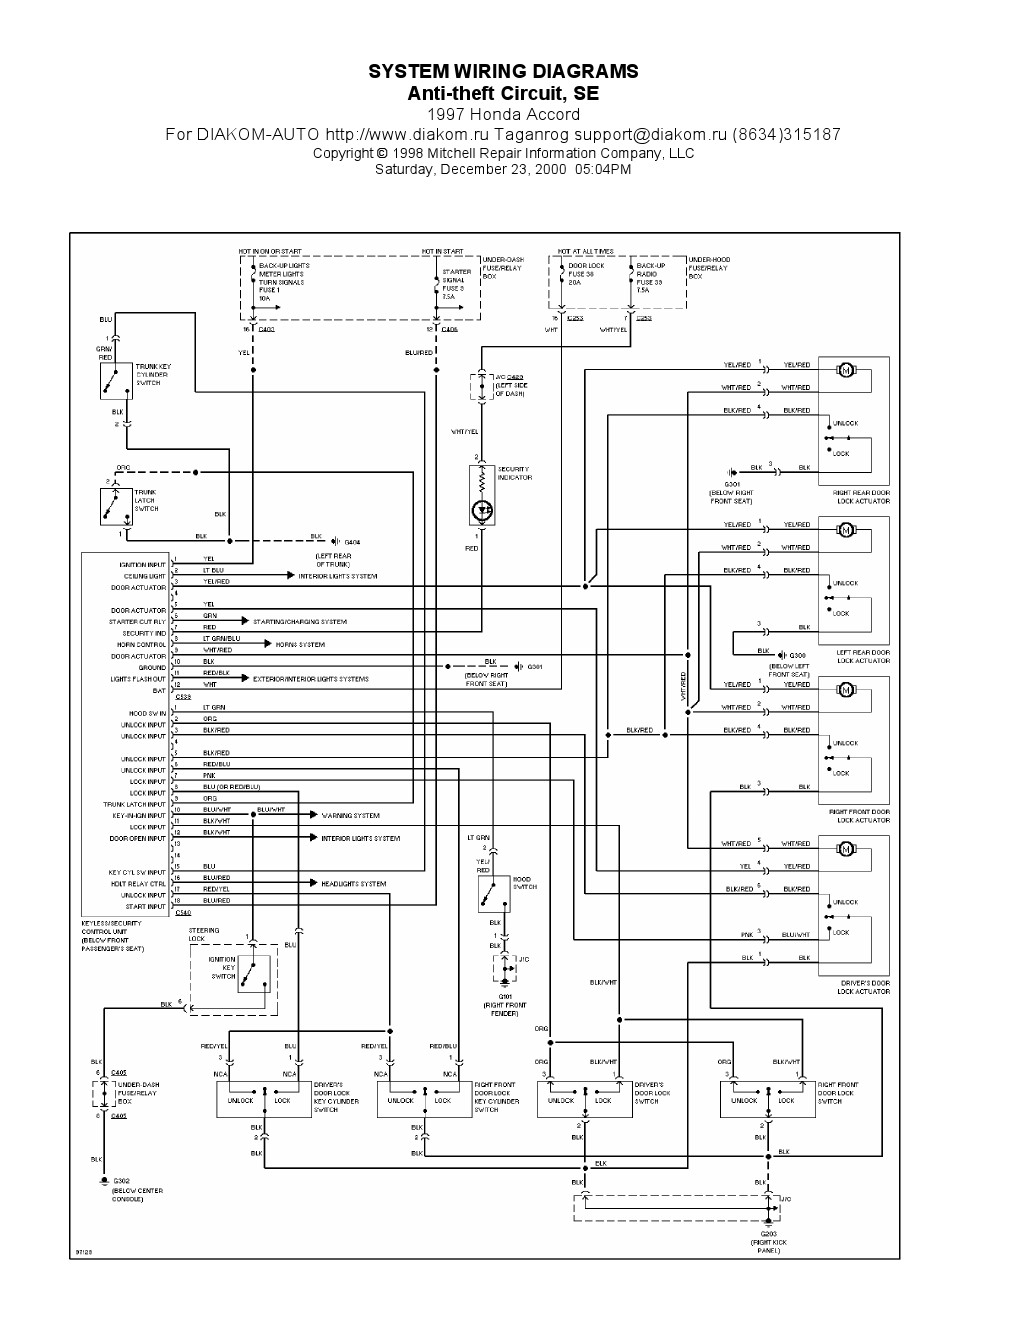 hight resolution of 97 accord wire diagram wiring diagram toolbox 1997 honda accord ignition system wiring diagram 1997 honda accord wiring system